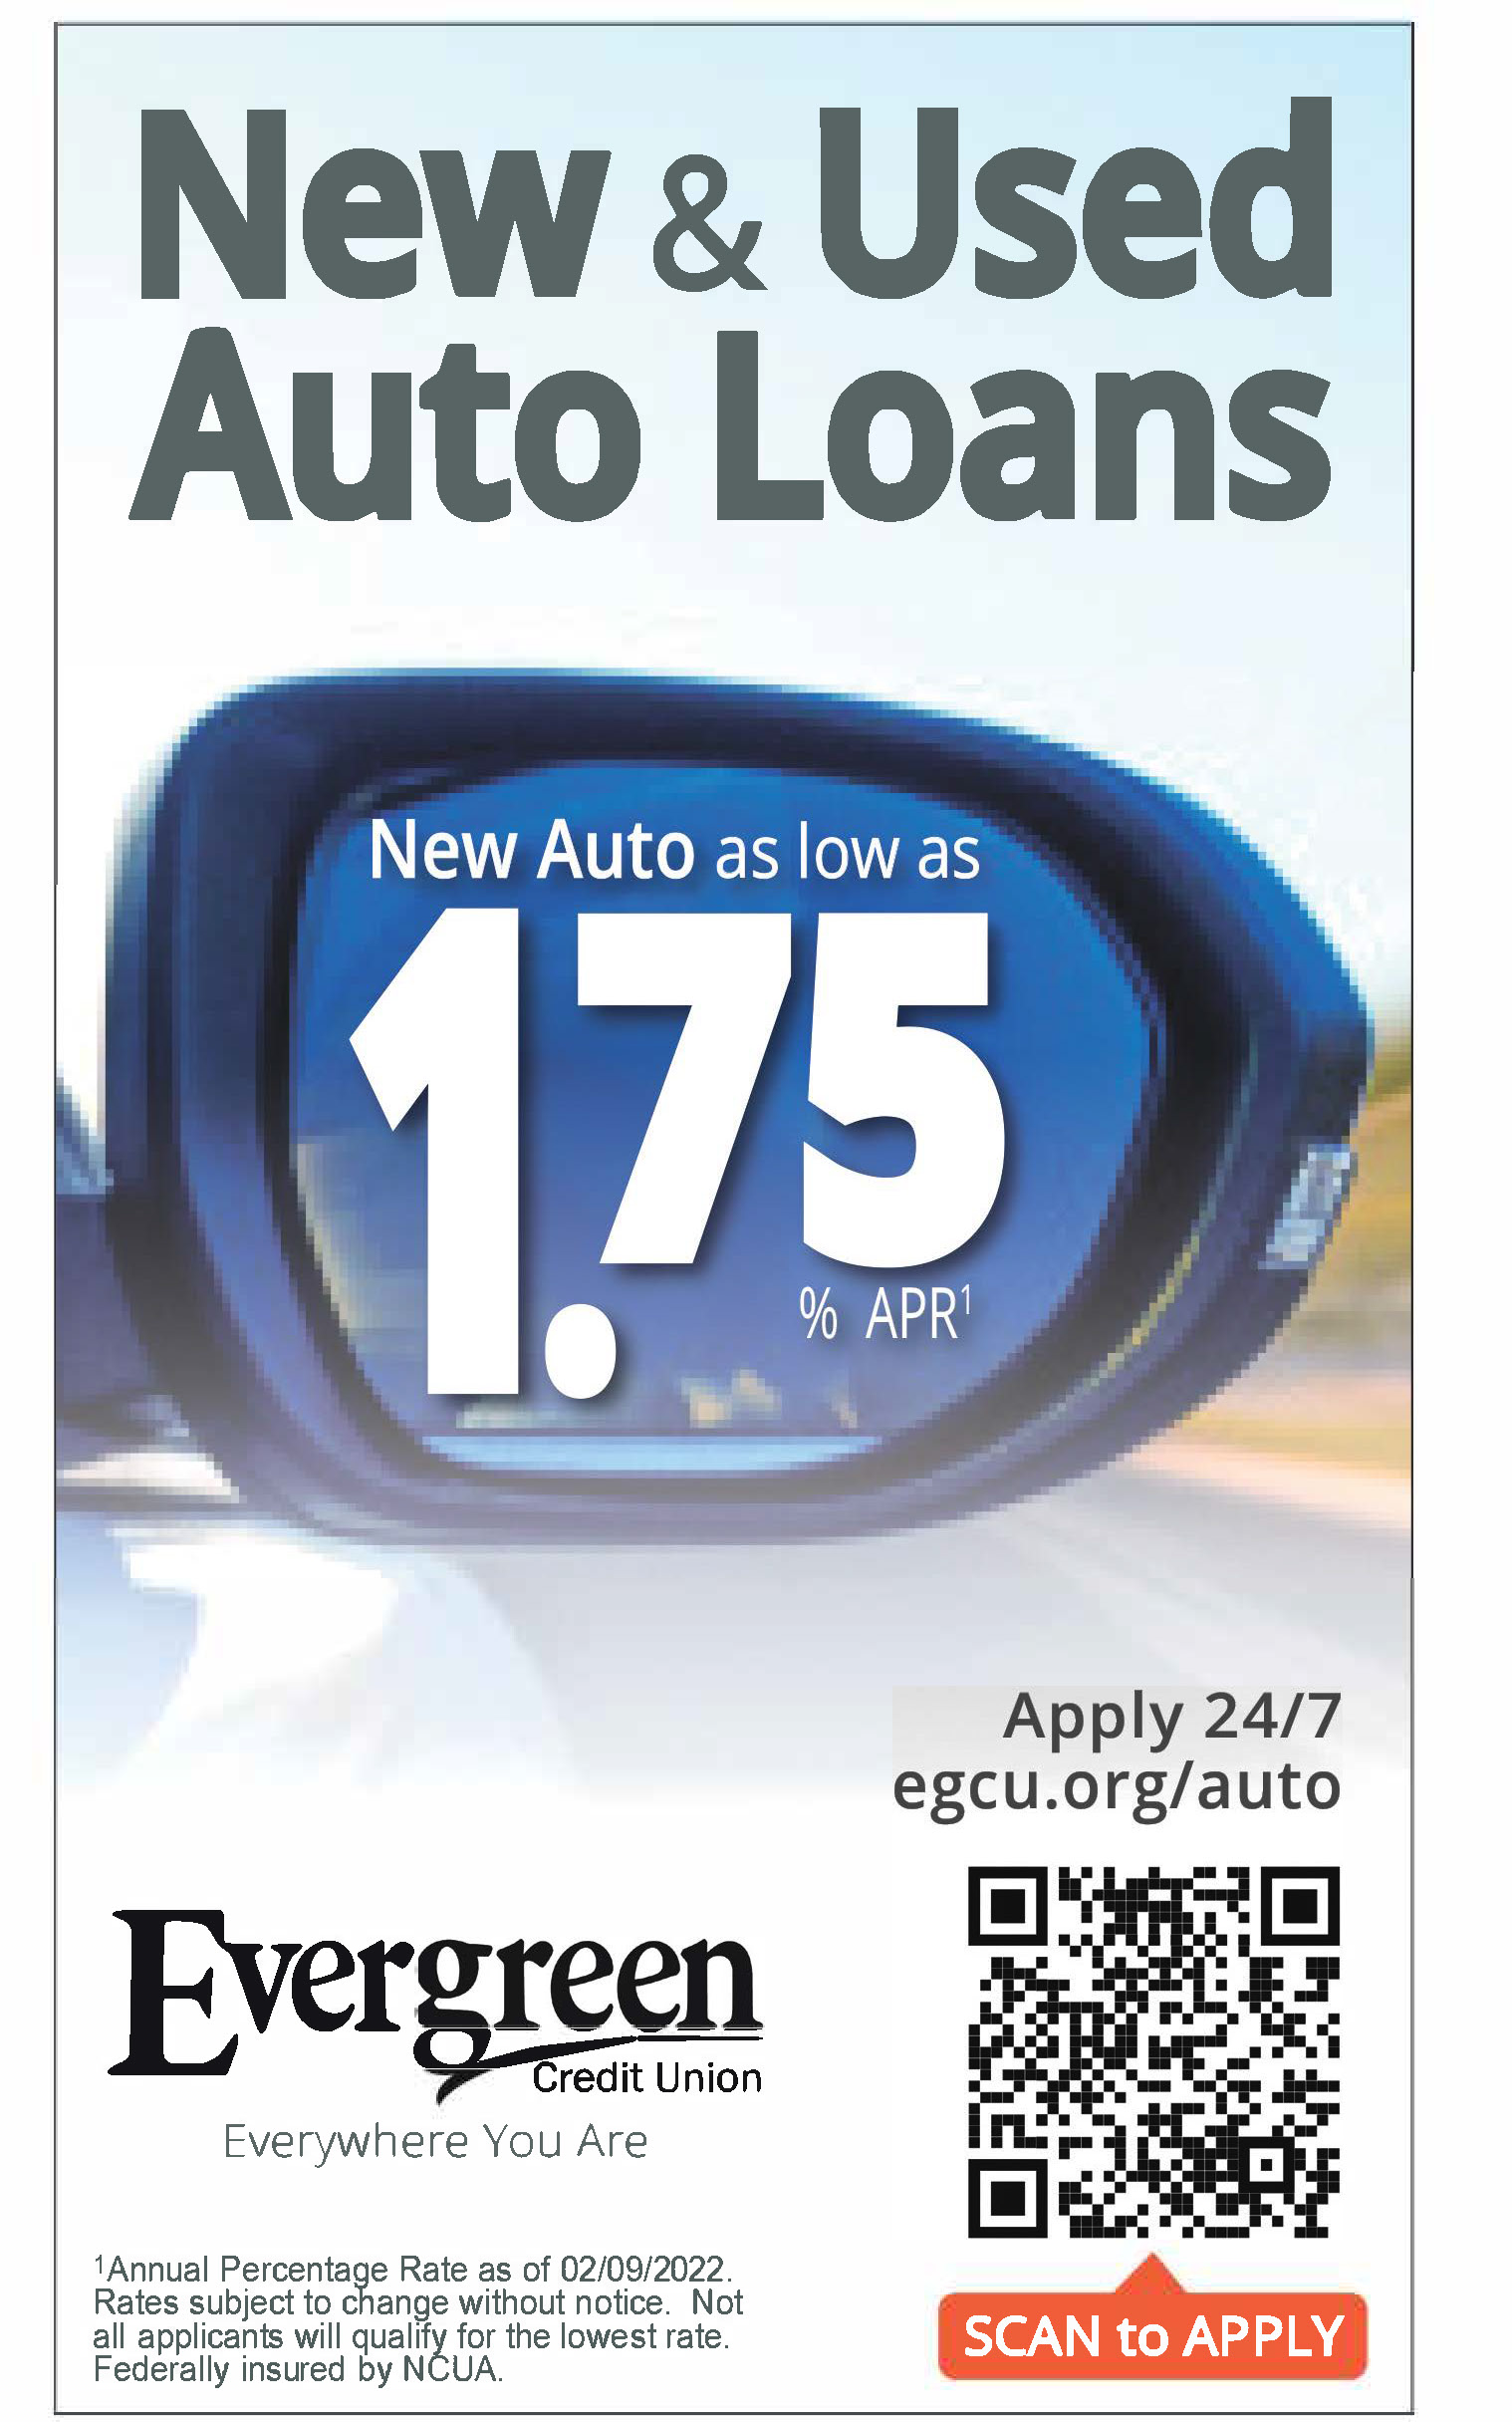 https://www.egcu.org/loans/loan-center/auto-finance-center.html